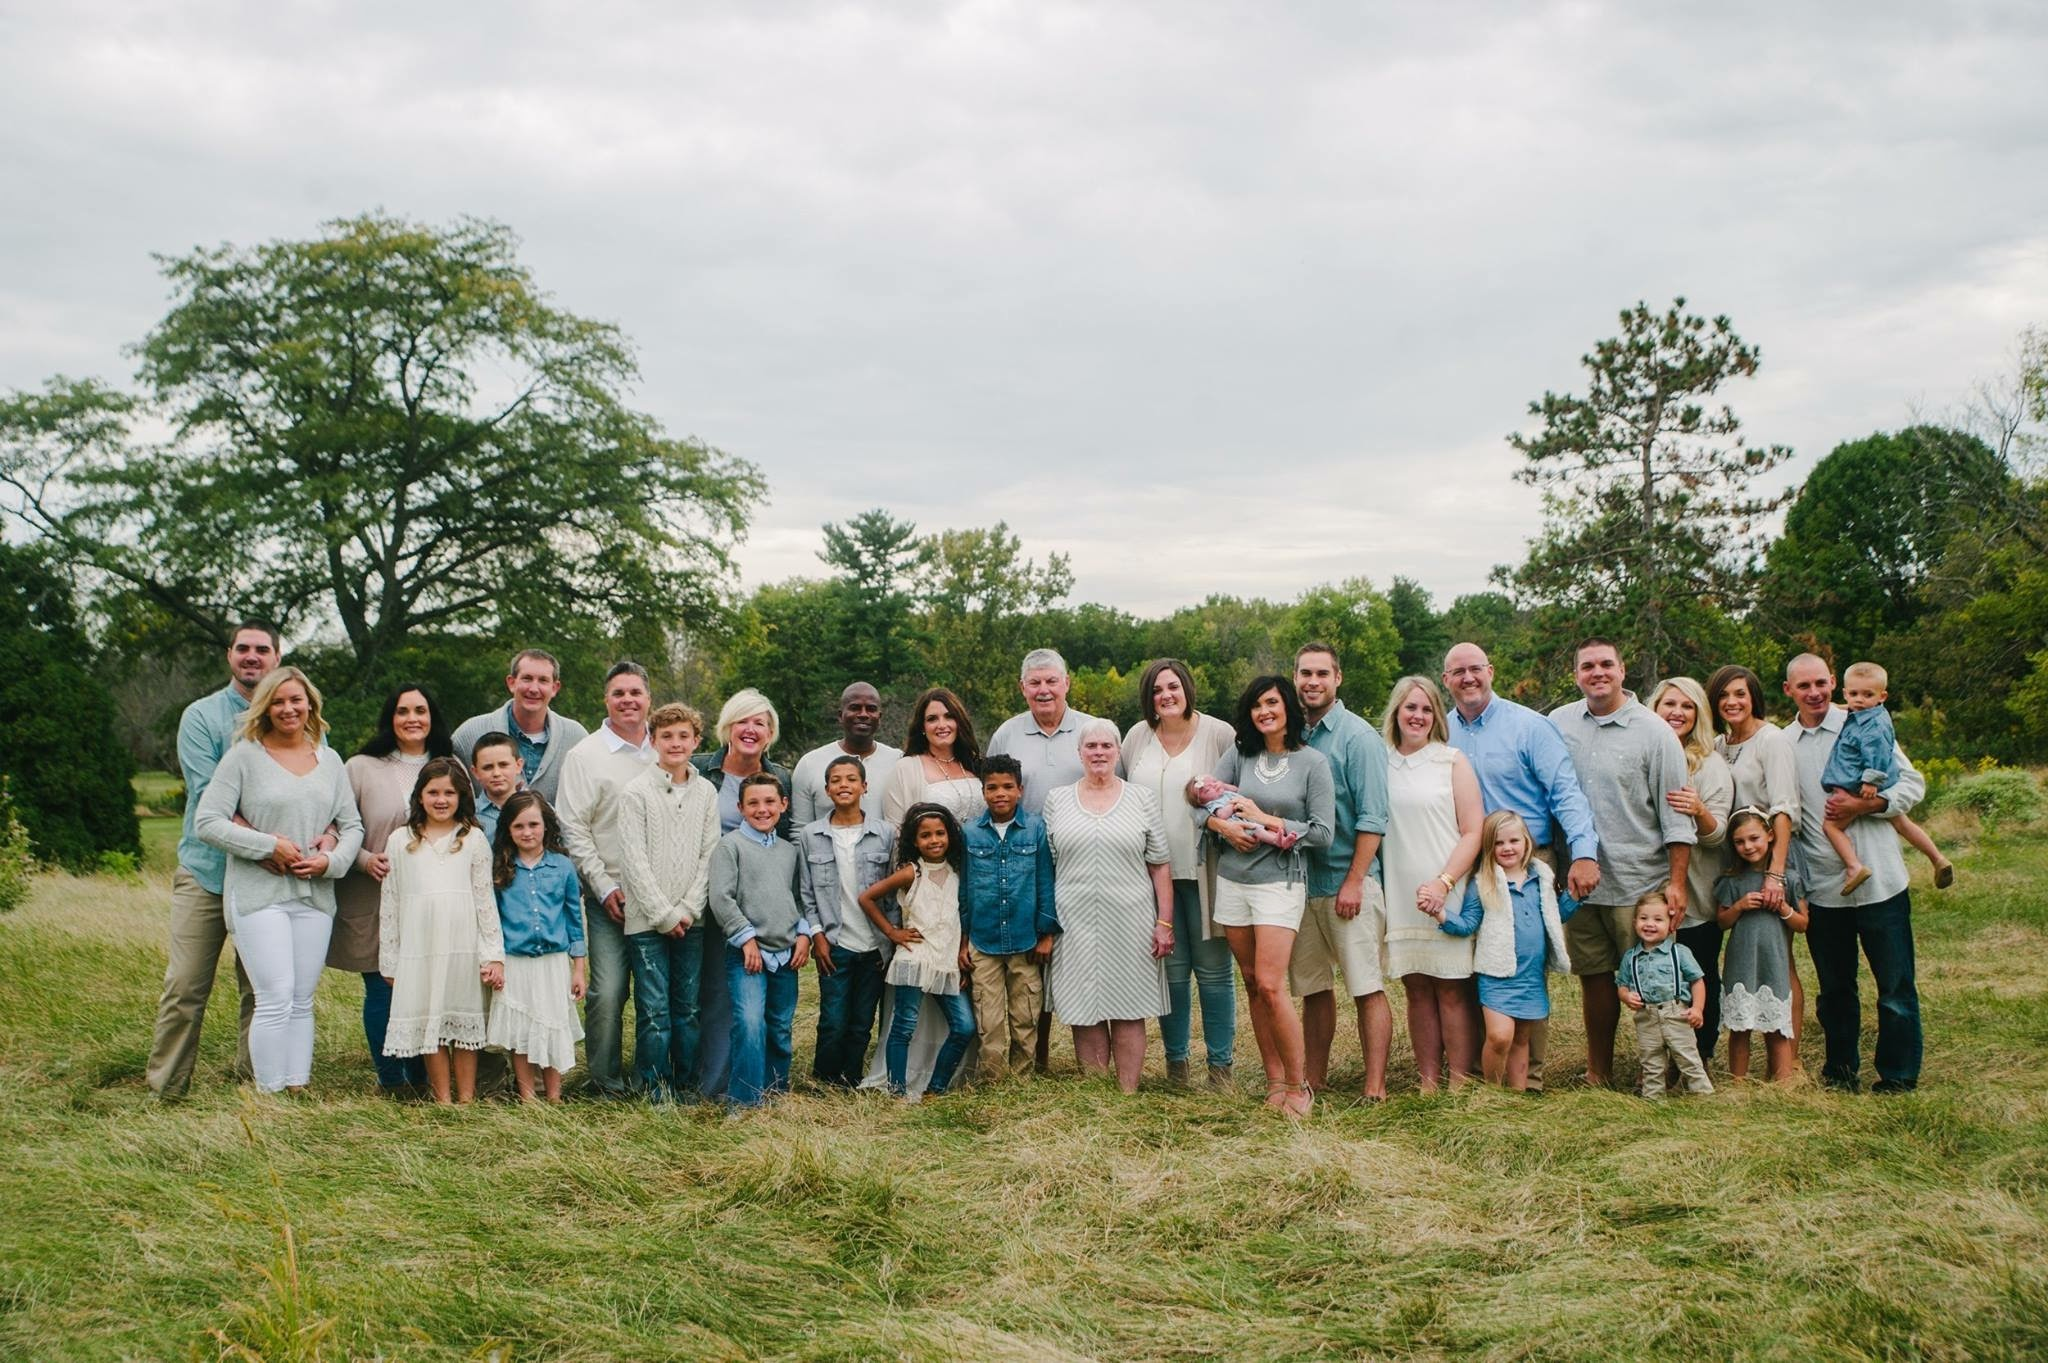 The Hogan Family, a proud Peoria family. My wife is the 2nd oldest of nine kids.